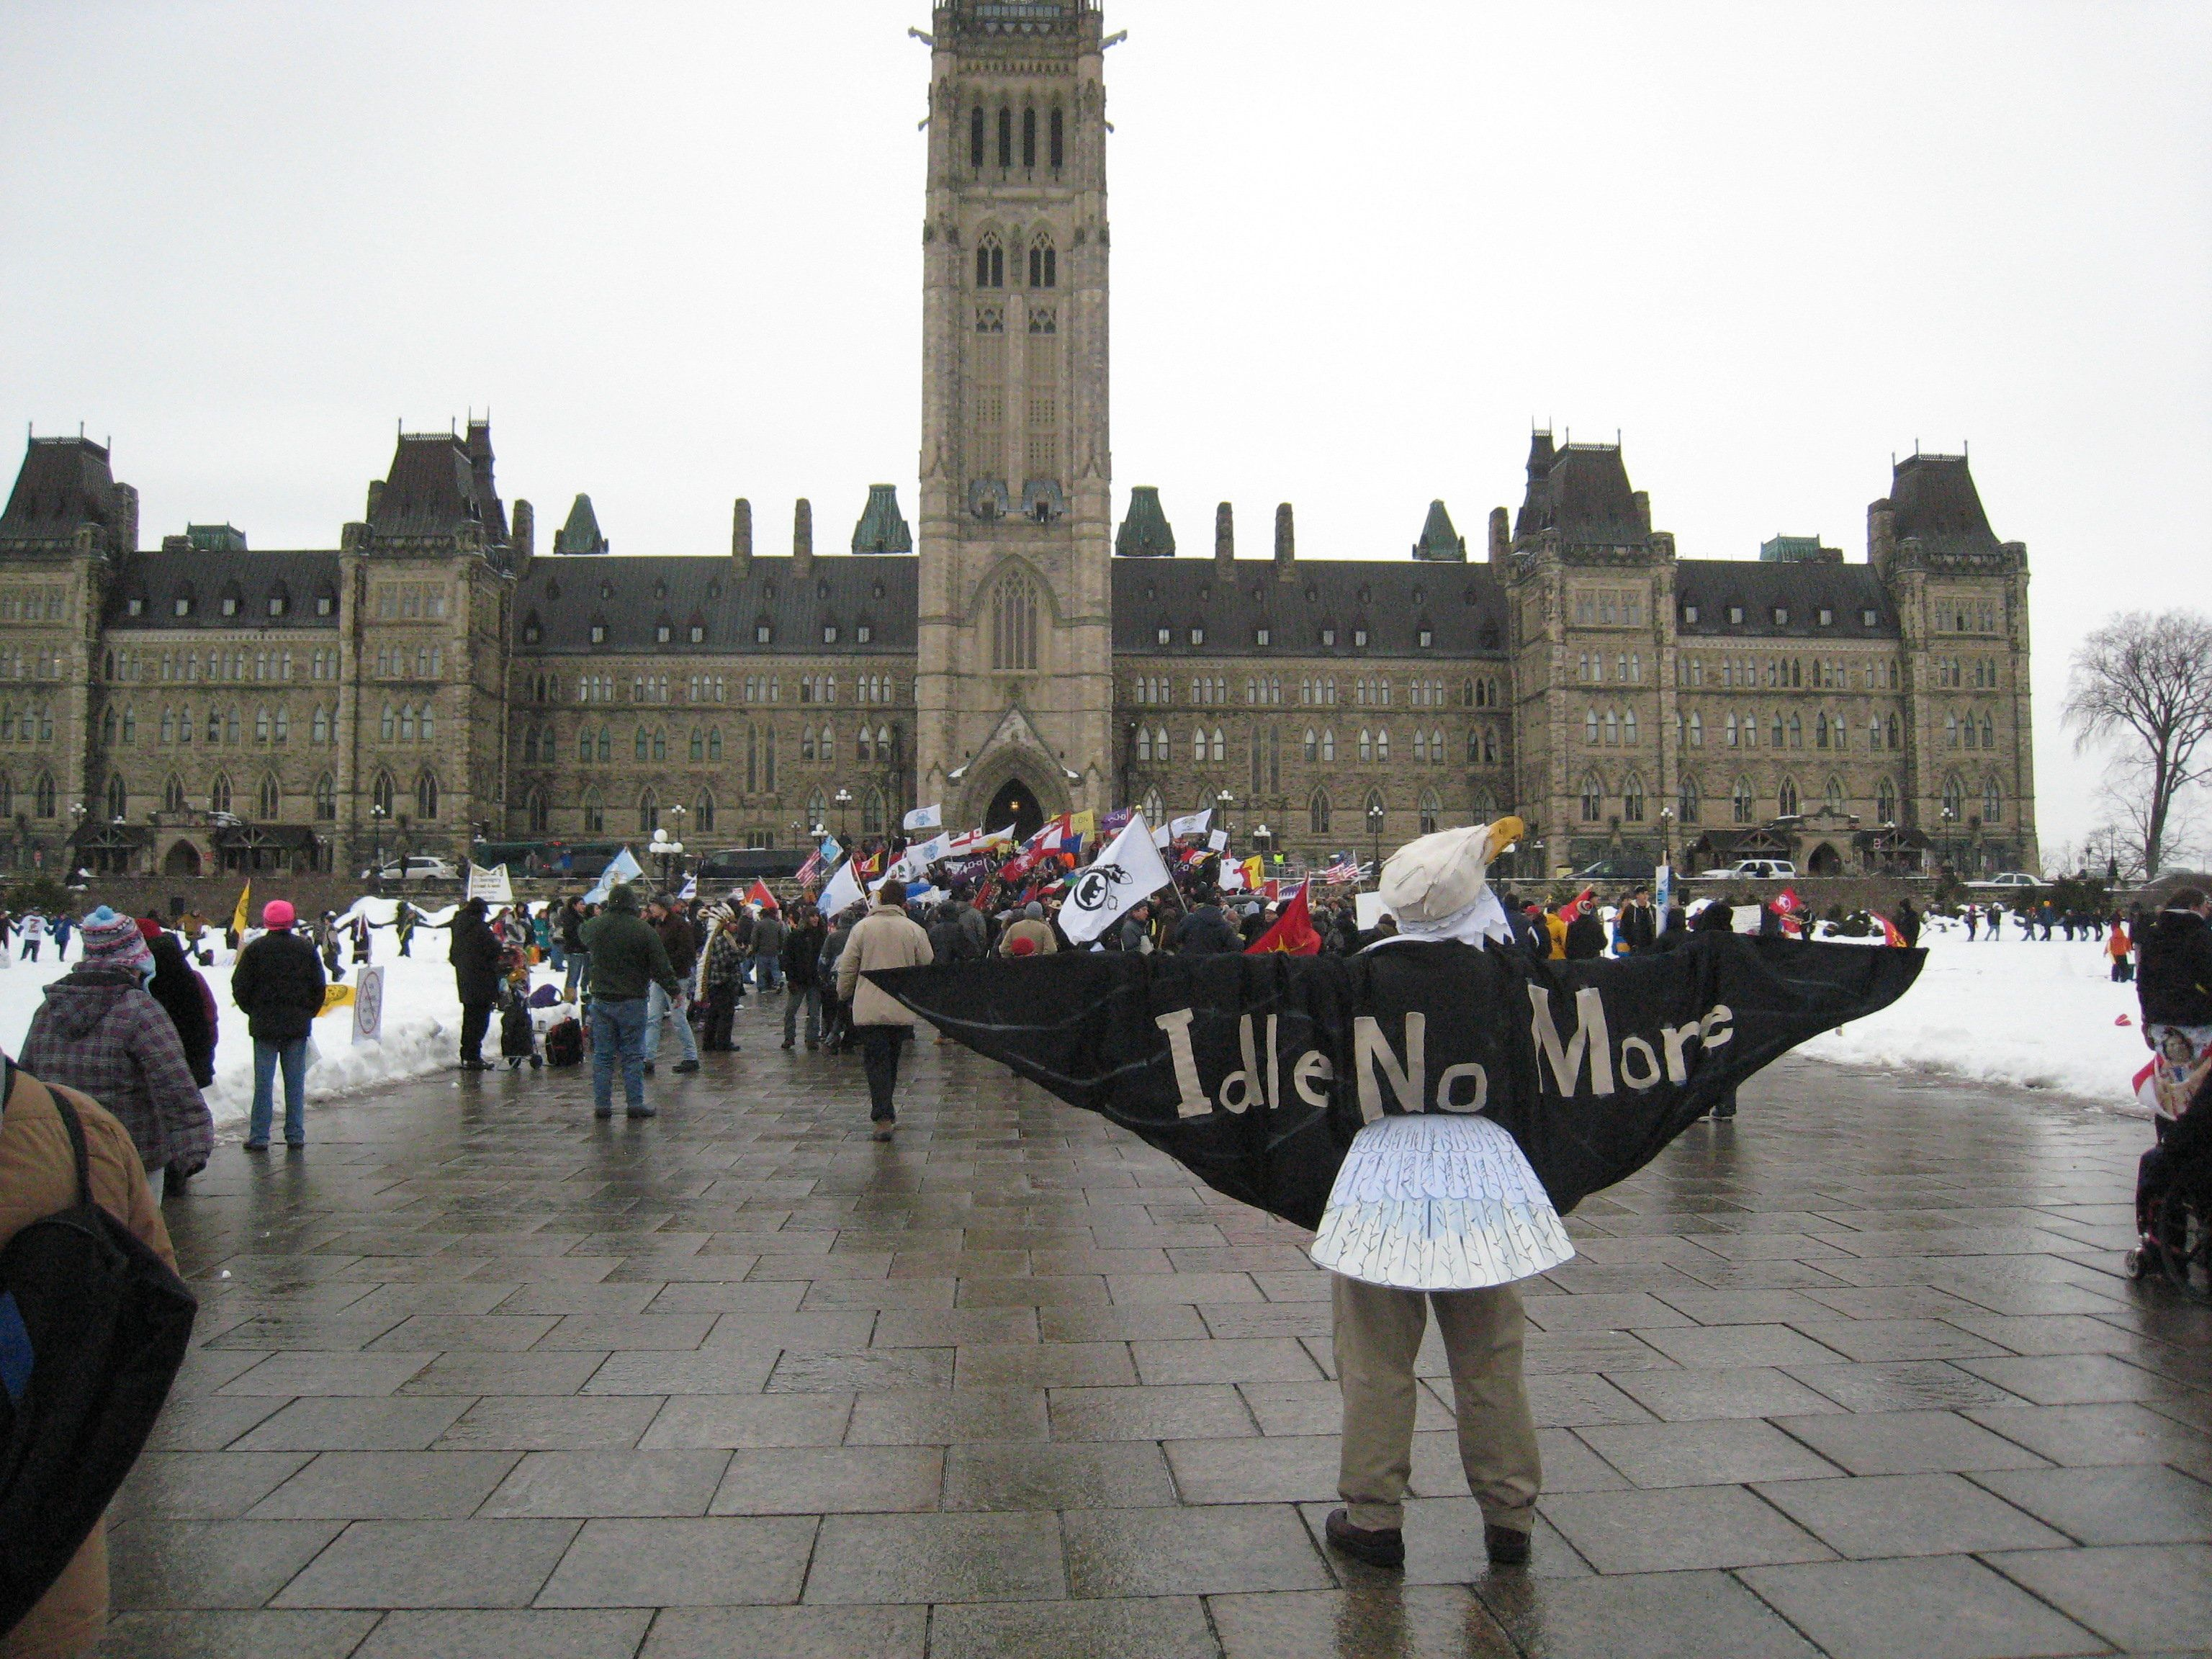 """<span class='image-component__caption' itemprop=""""caption""""><span style=""""color: #262626; font-family: arial, sans-serif; font-size: 13px; line-height: 16px;"""">The Idle No More Movement holds a protest on Parliament Hill.</span></span>"""